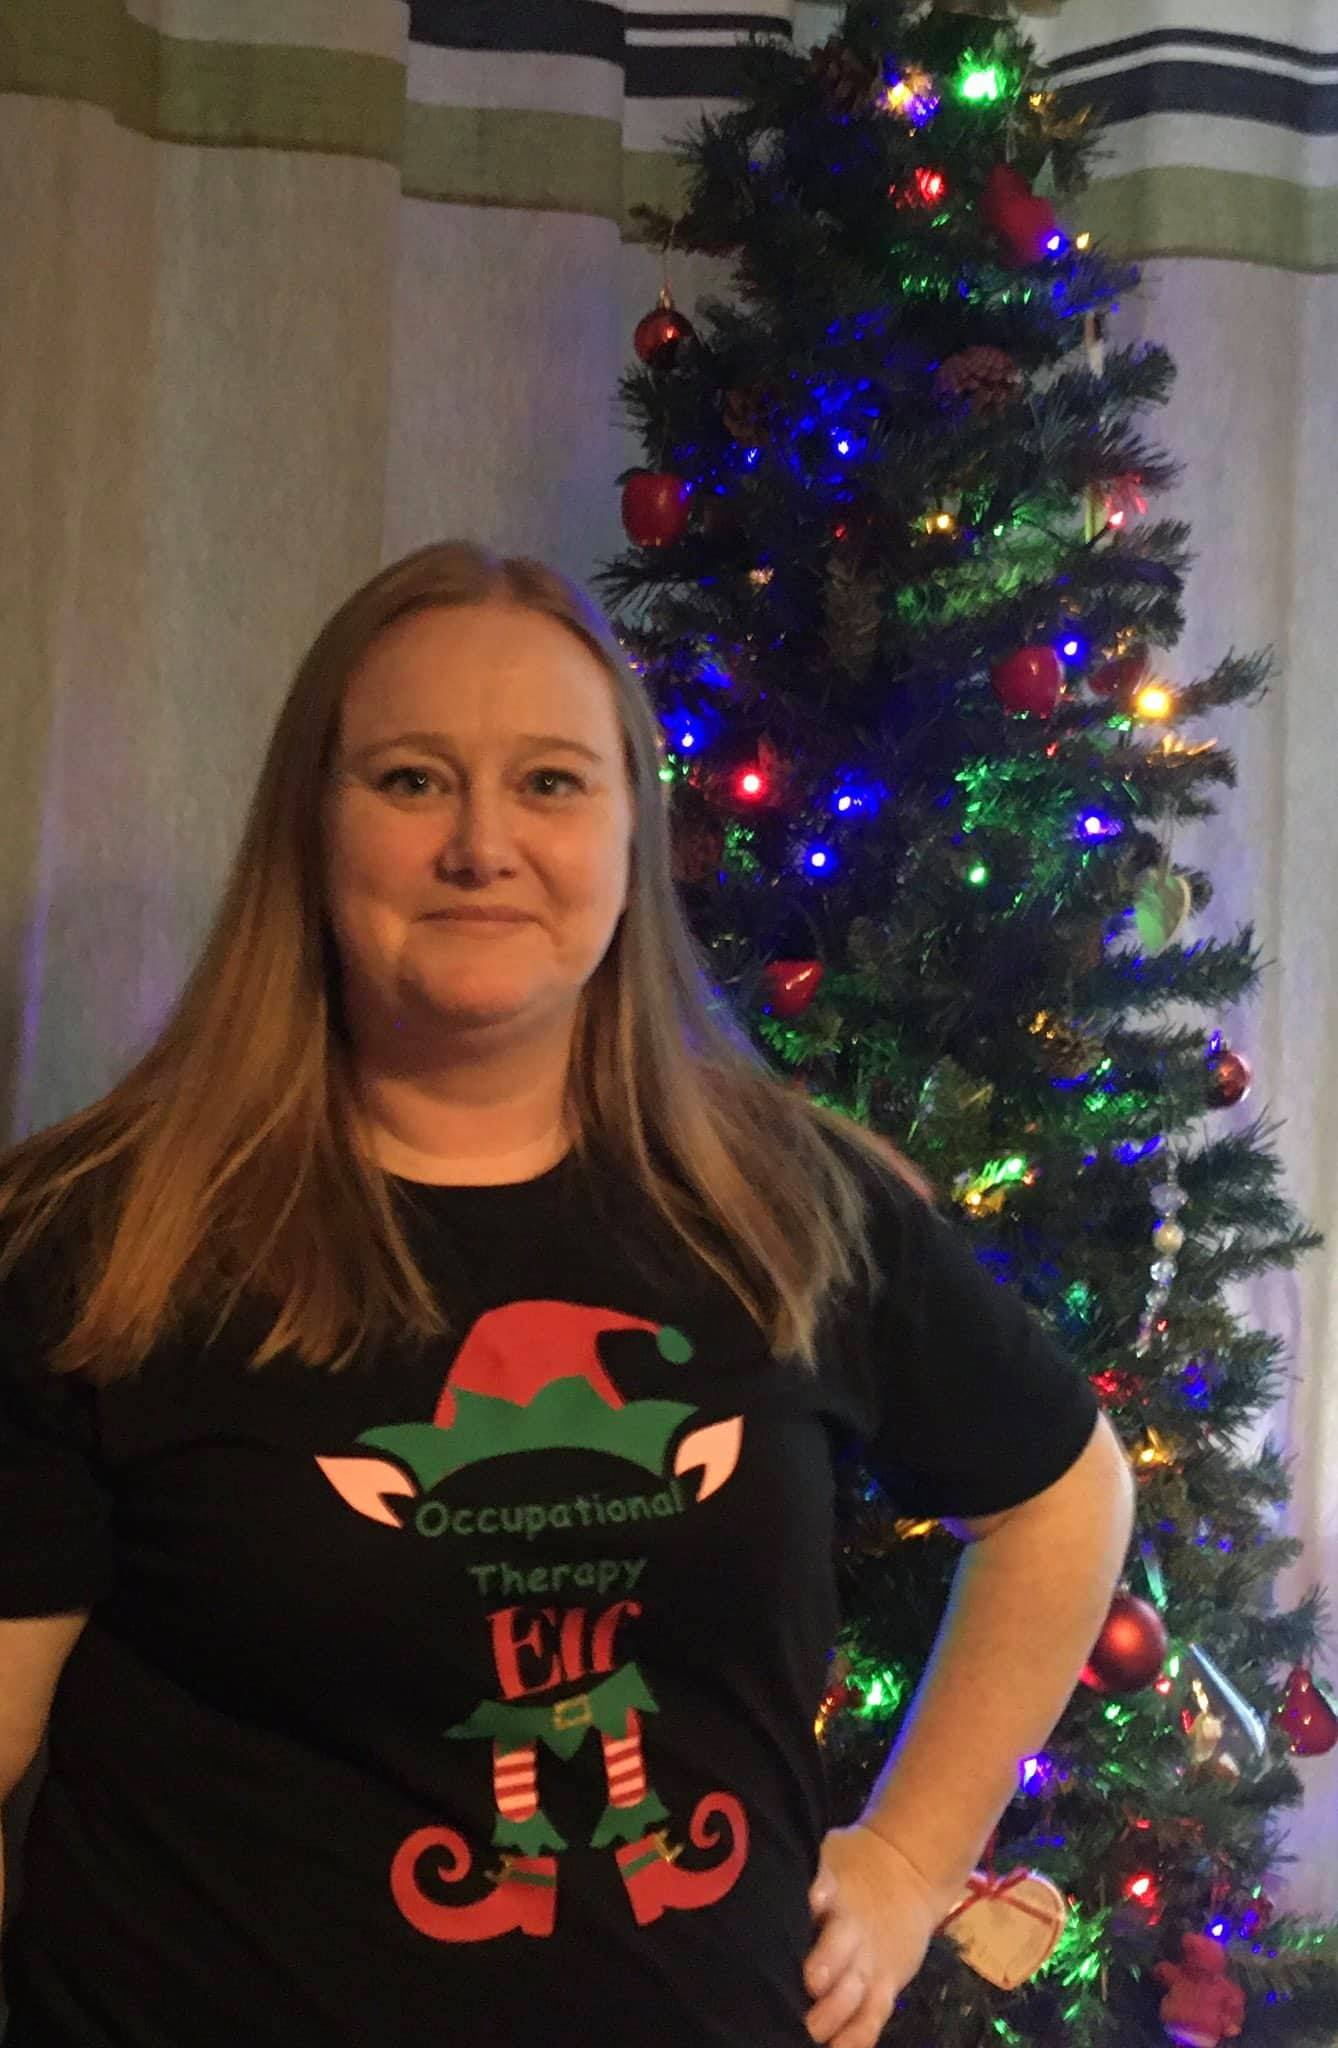 Course Leader with elf t-shirt in front of Christmas tree